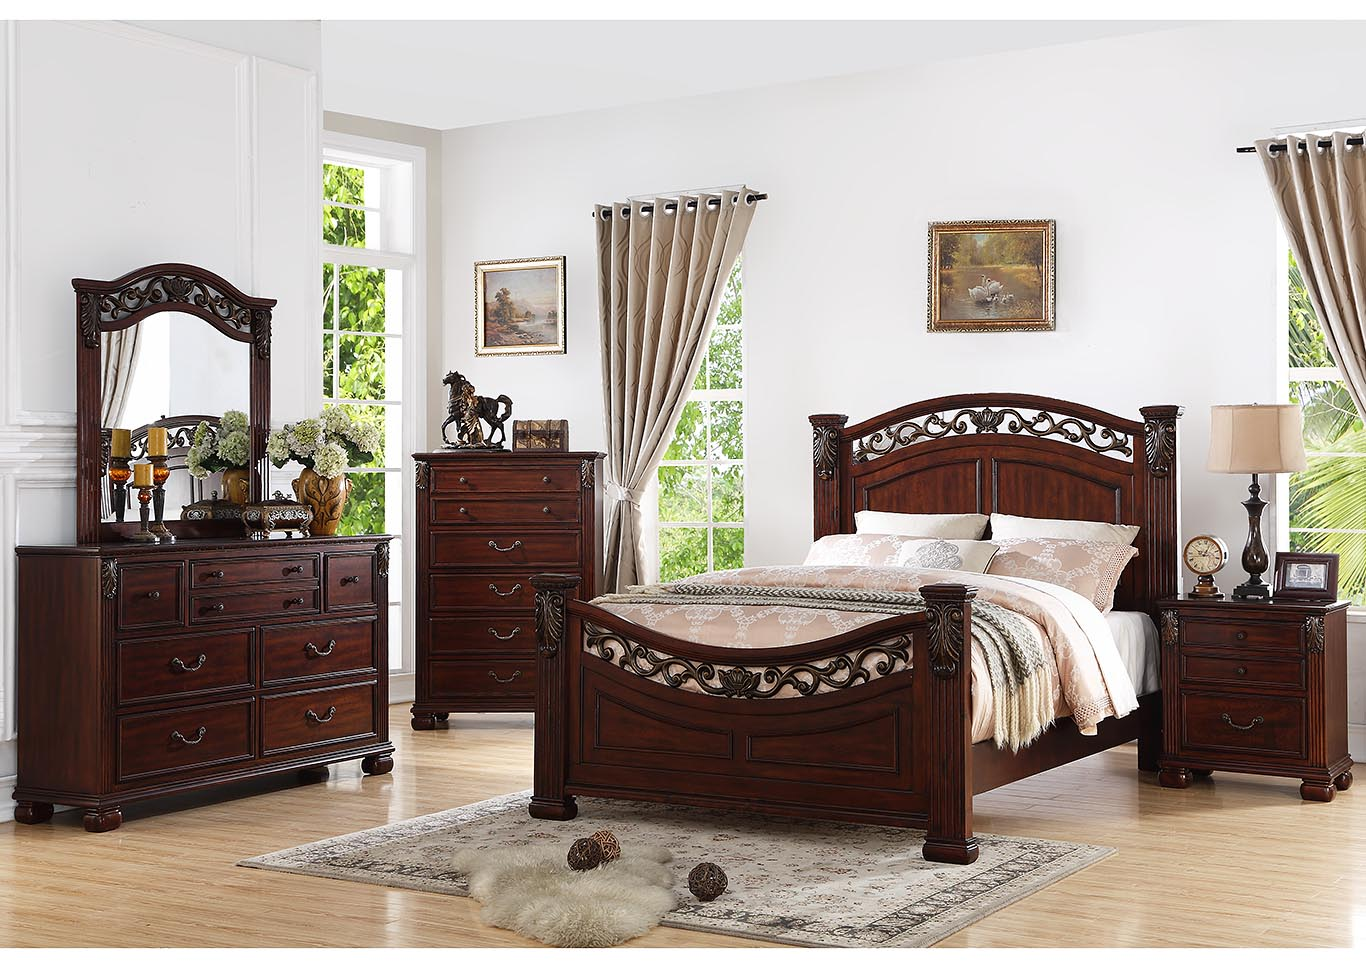 Tourneau Queen Bed,Kith